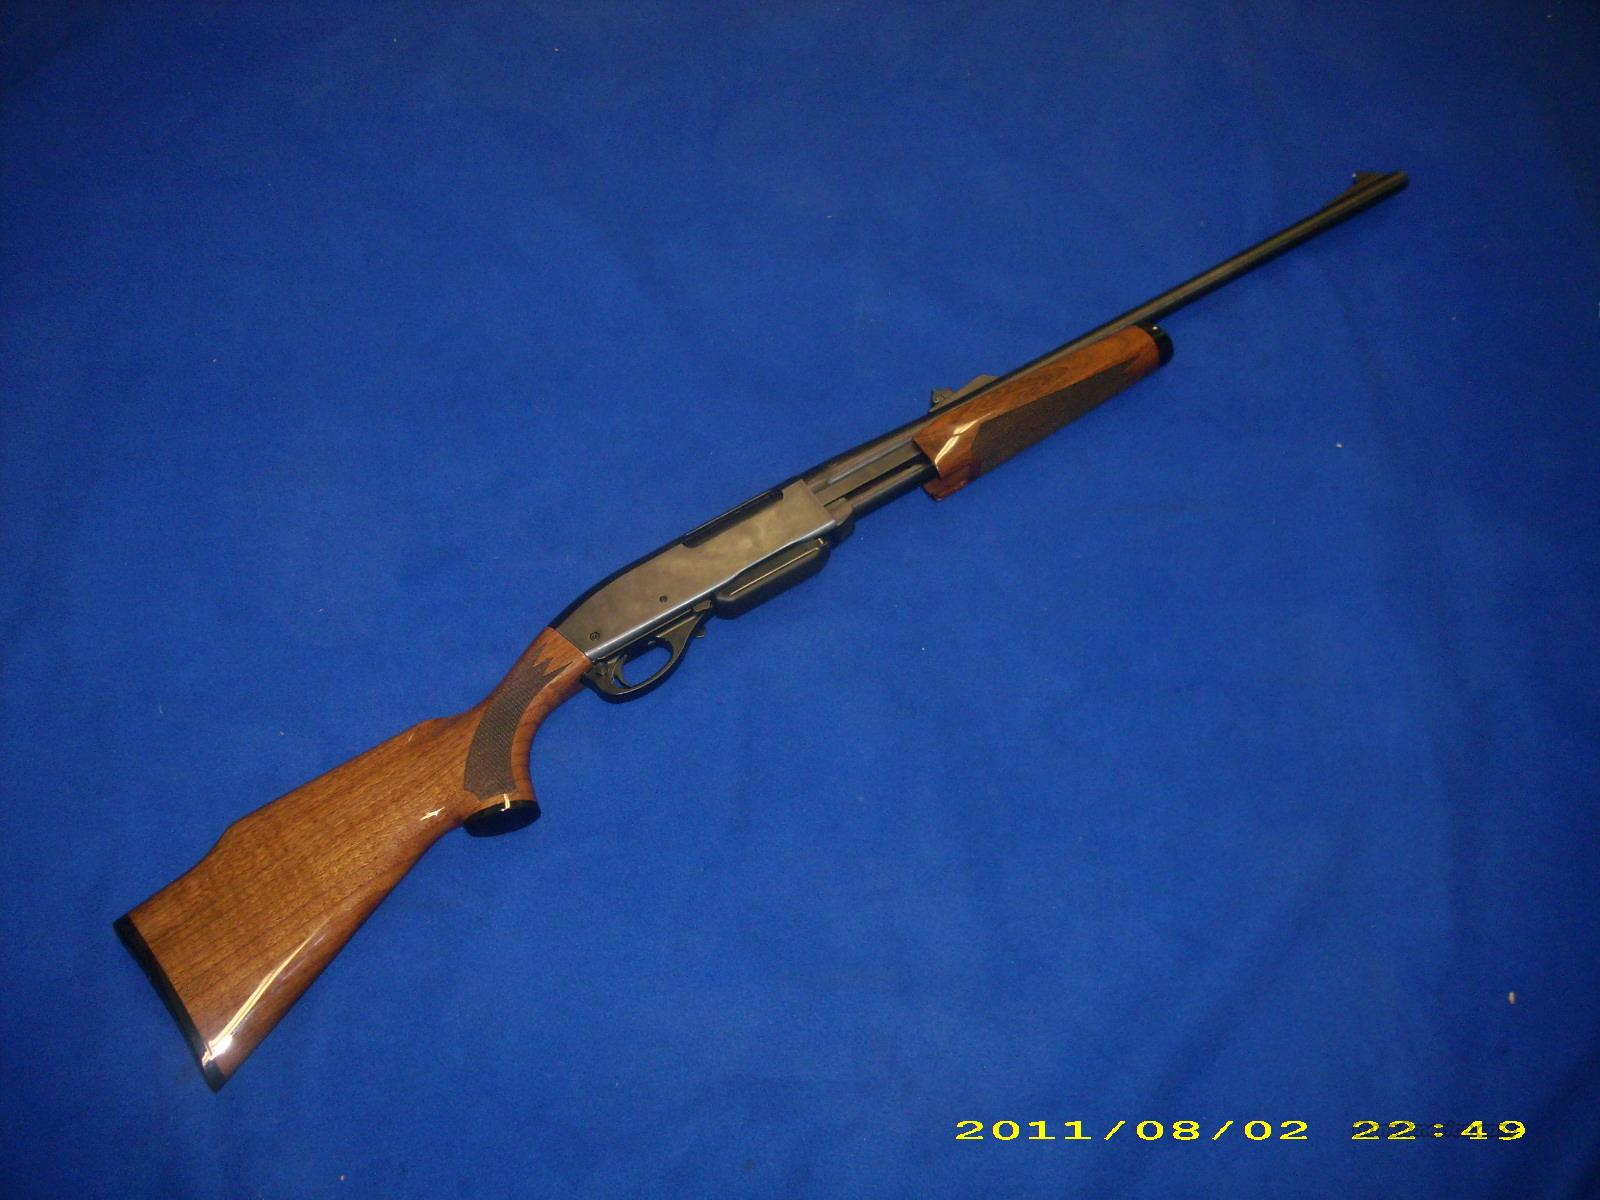 Remington Model 7600 270 Cal. Pump  Guns > Rifles > Remington Rifles - Modern > Model 700 > Sporting